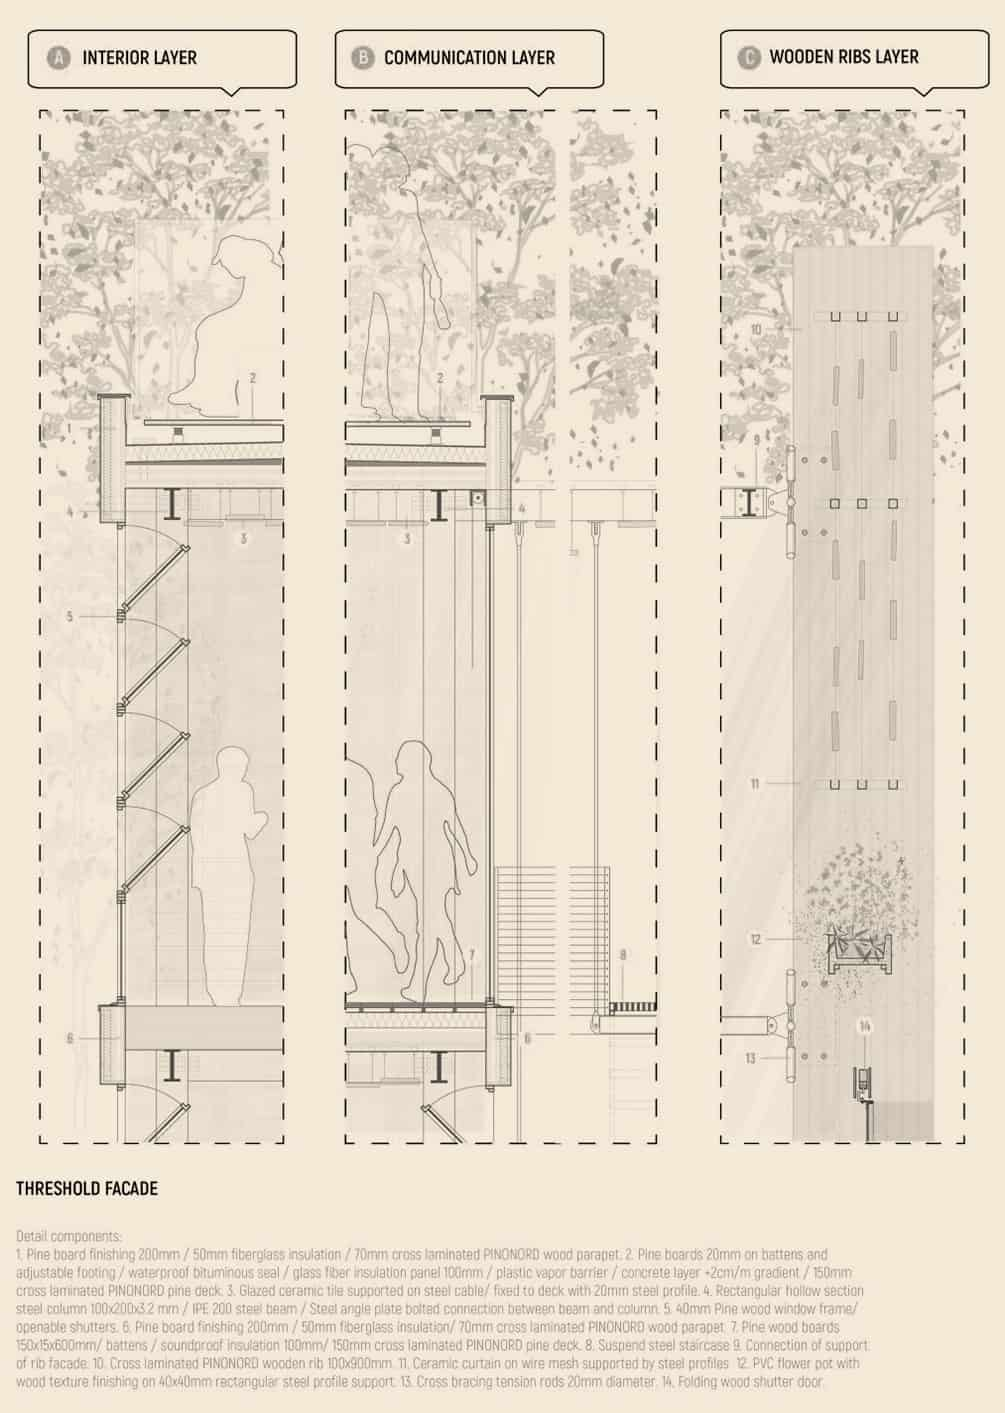 Threshold Facade - Constructing Encounters - Student Porjects | IE School of Architecture and Design